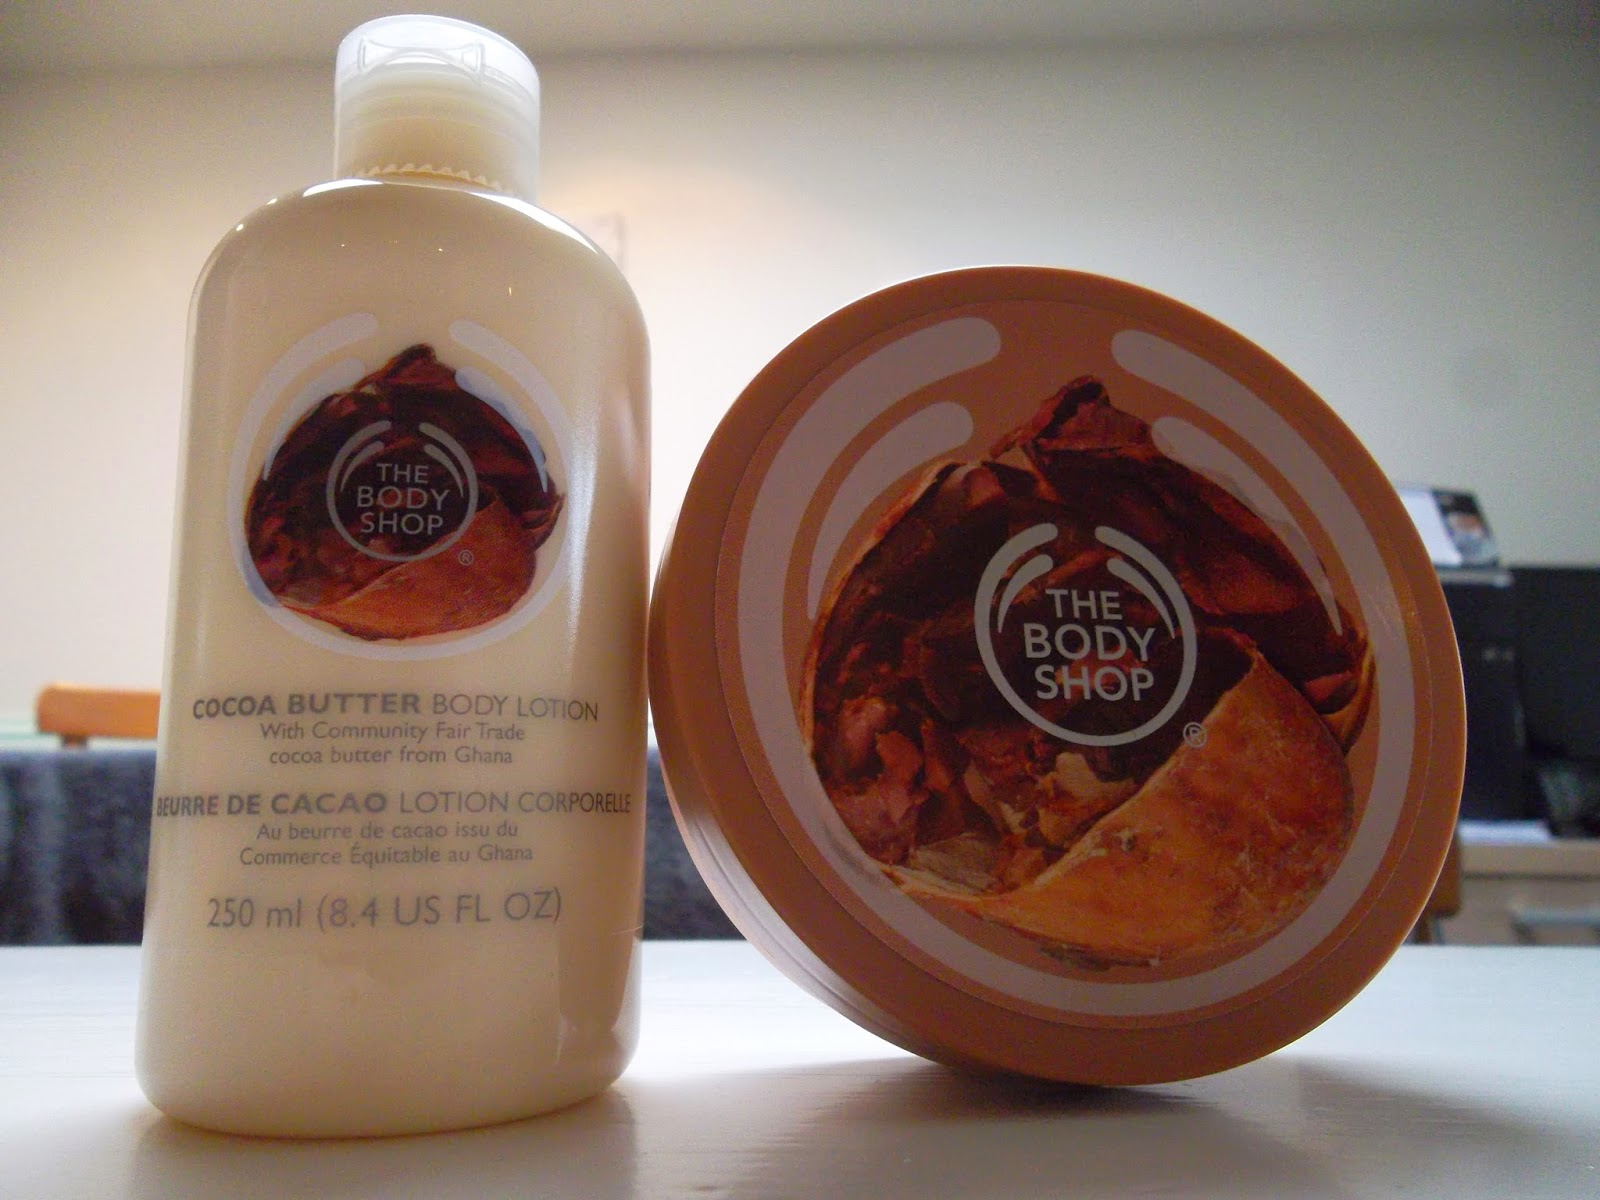 http://www.verodoesthis.be/2015/04/julie-body-shop-cocoa-body-butter-body.html